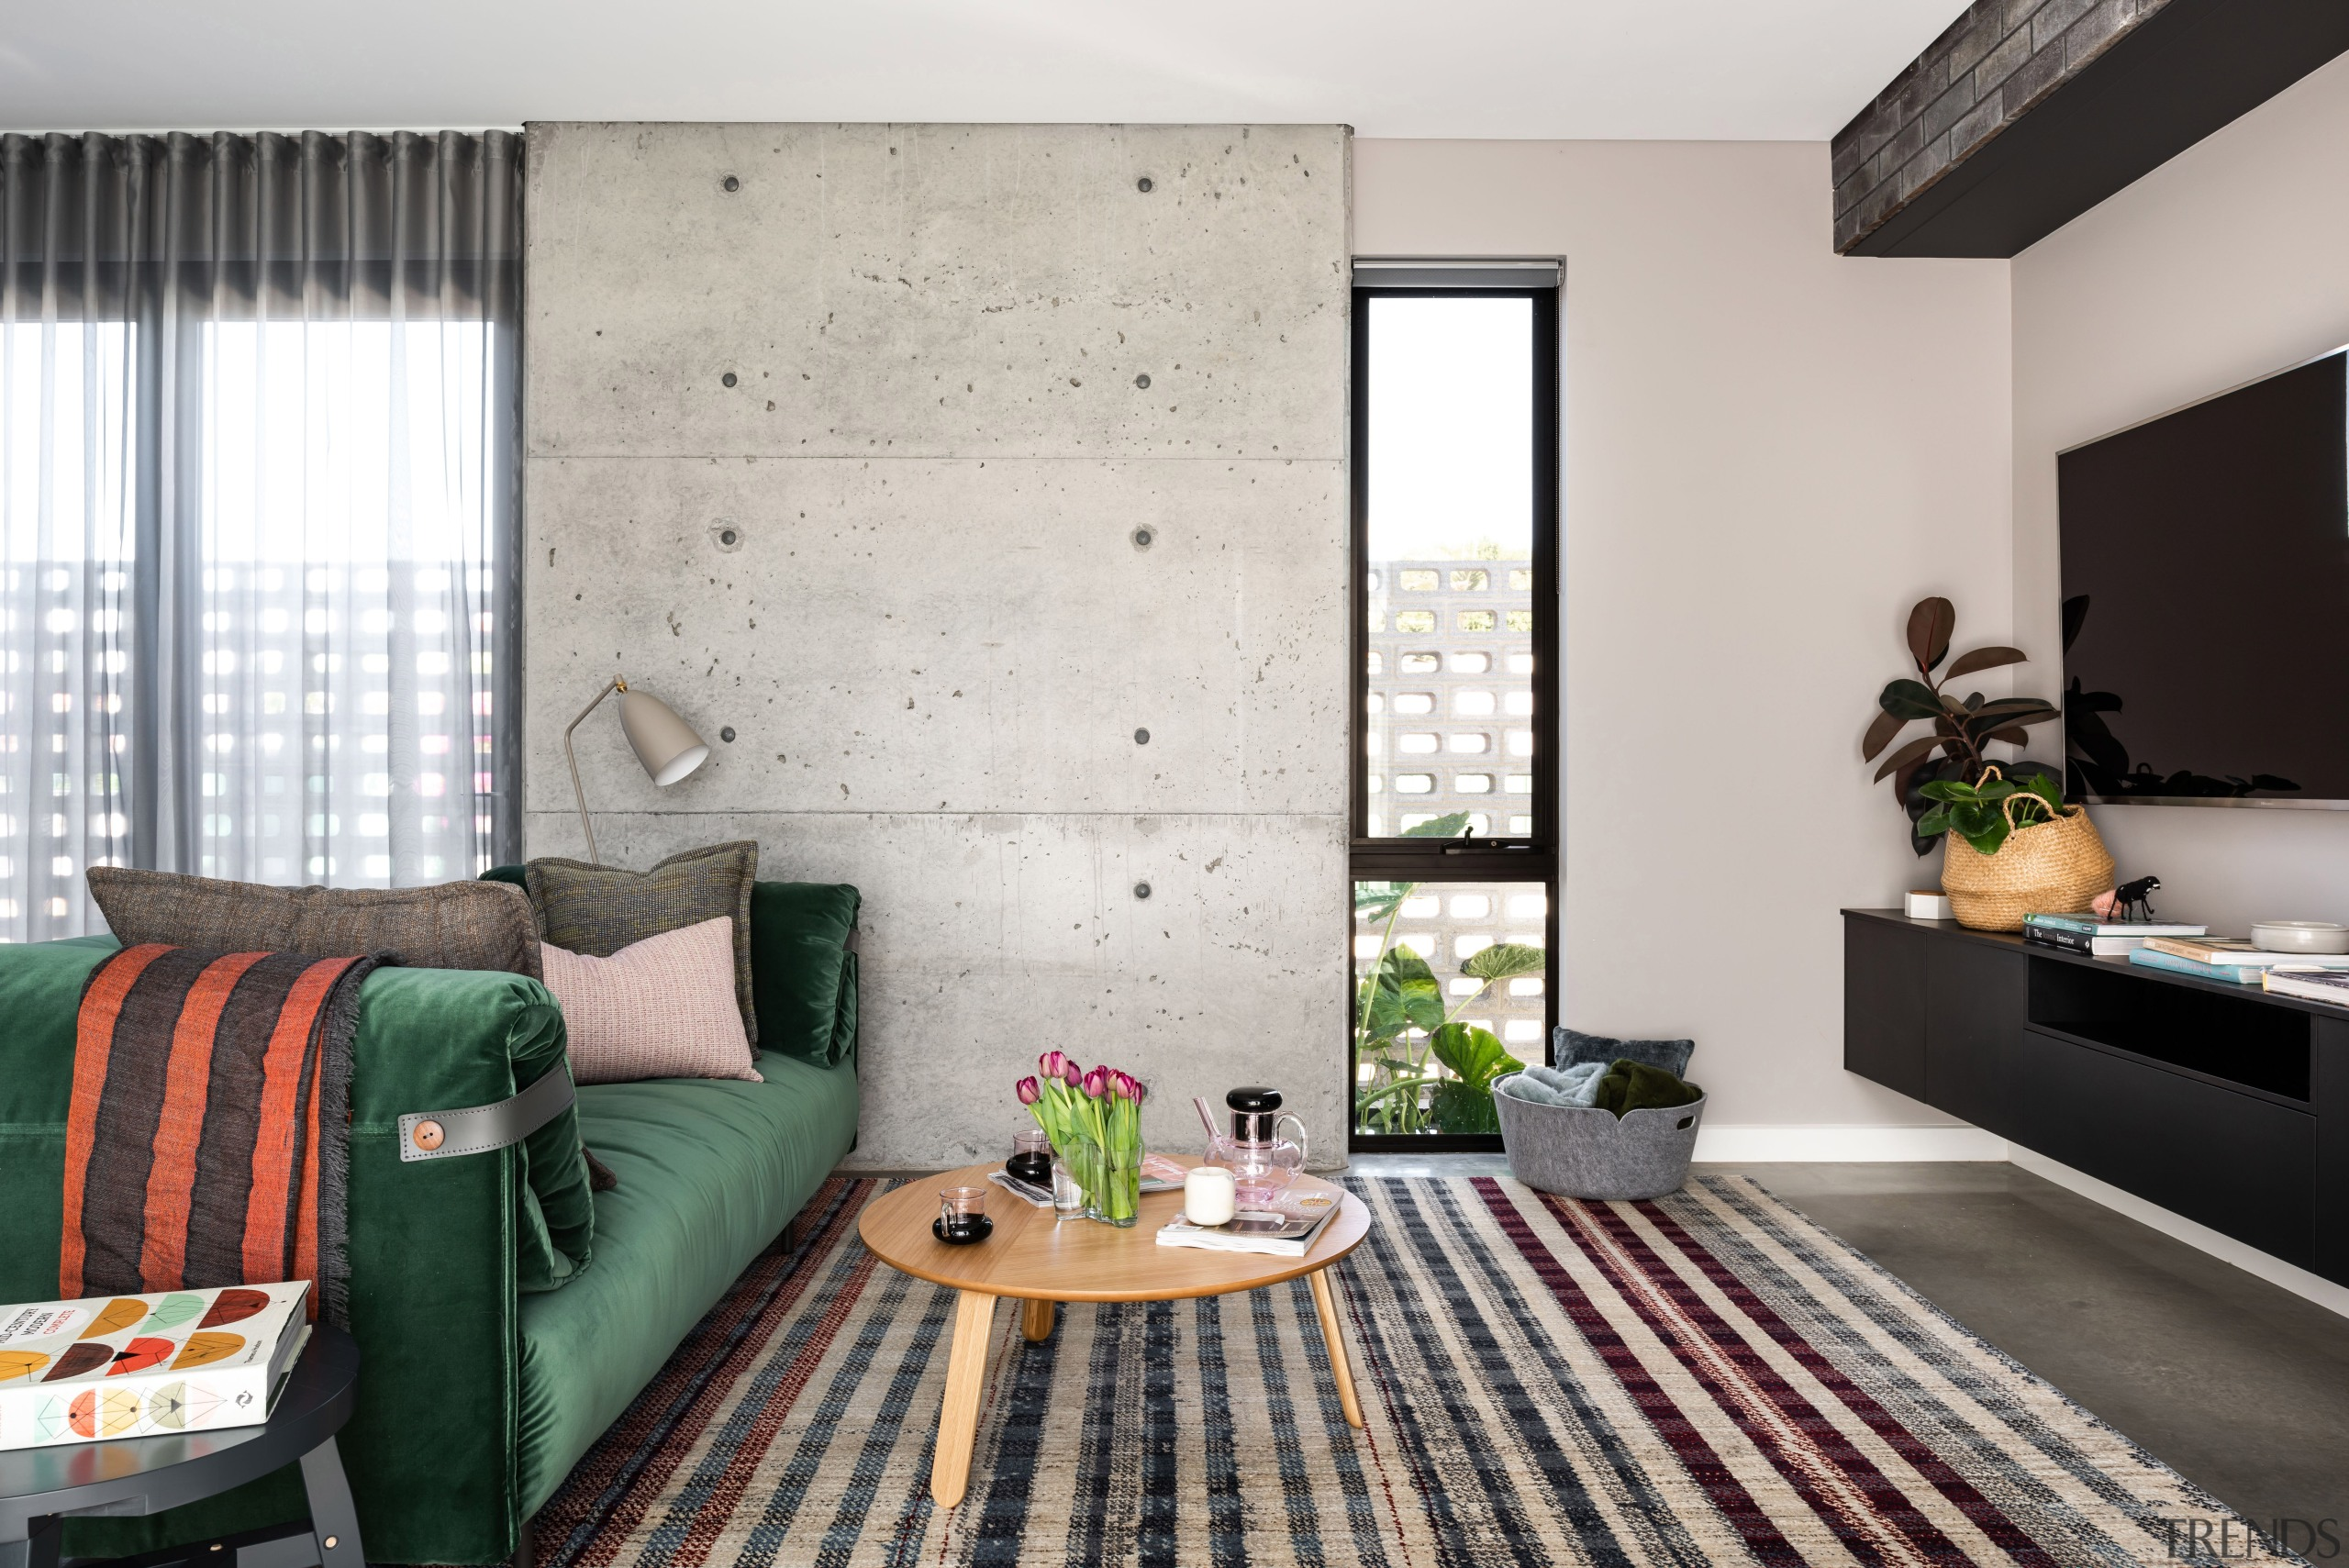 Rough with the smooth – a poured-in-situ feature architecture, coffee table, couch, curtain, floor, flooring, furniture, green, home, house, interior design, living room, table, wall, window covering, window treatment, gray, Dalecki Design